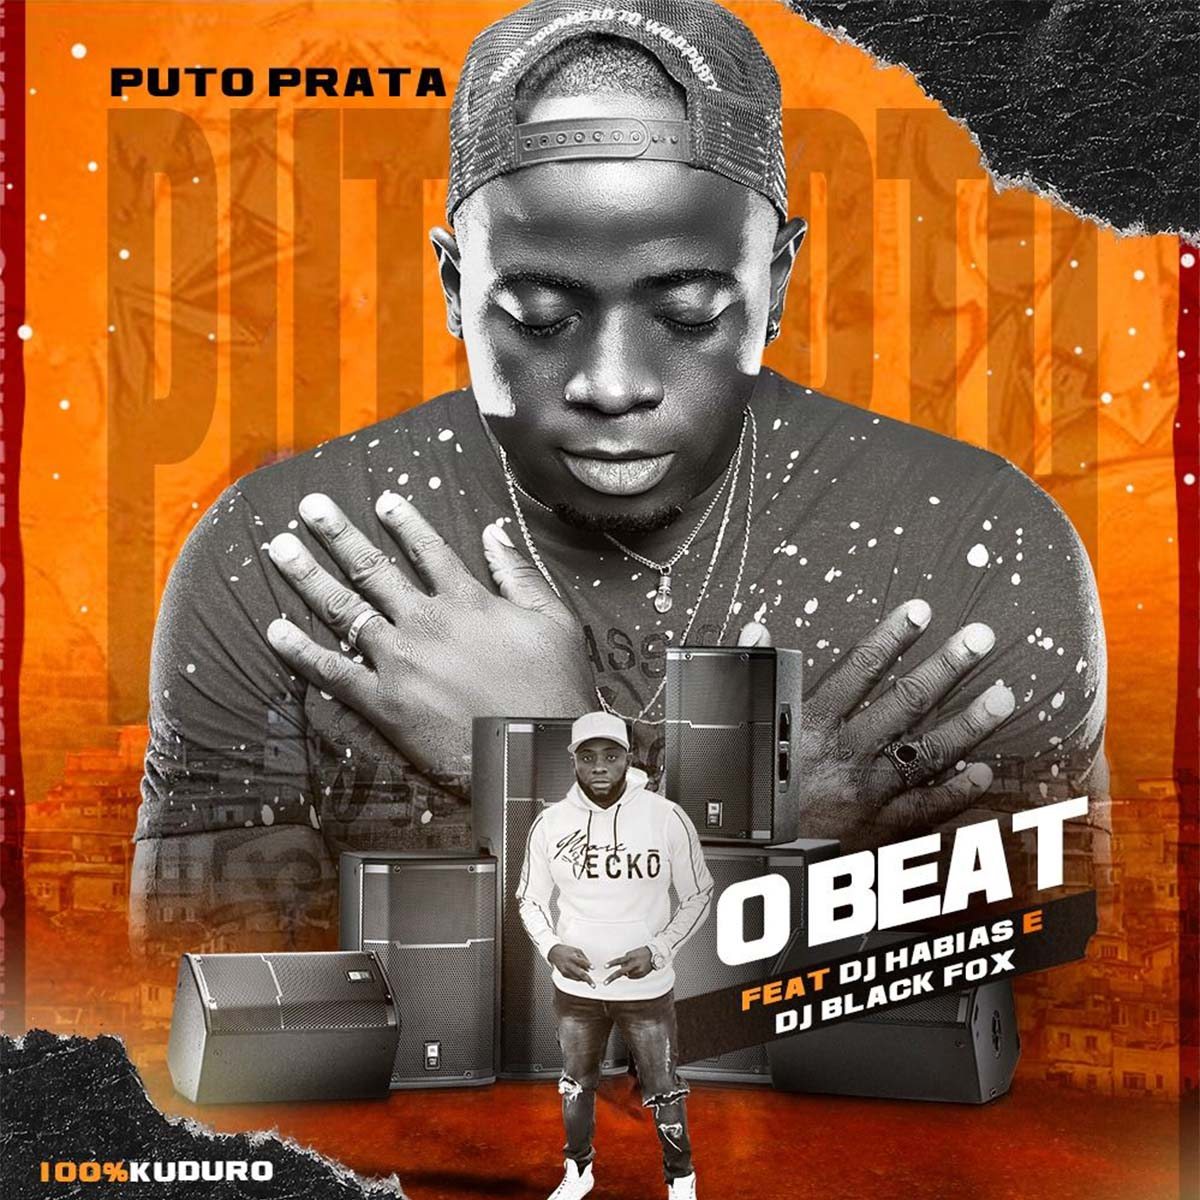 Puto Prata - O Beat (feat. Dj Habias & Dj Black Fox)